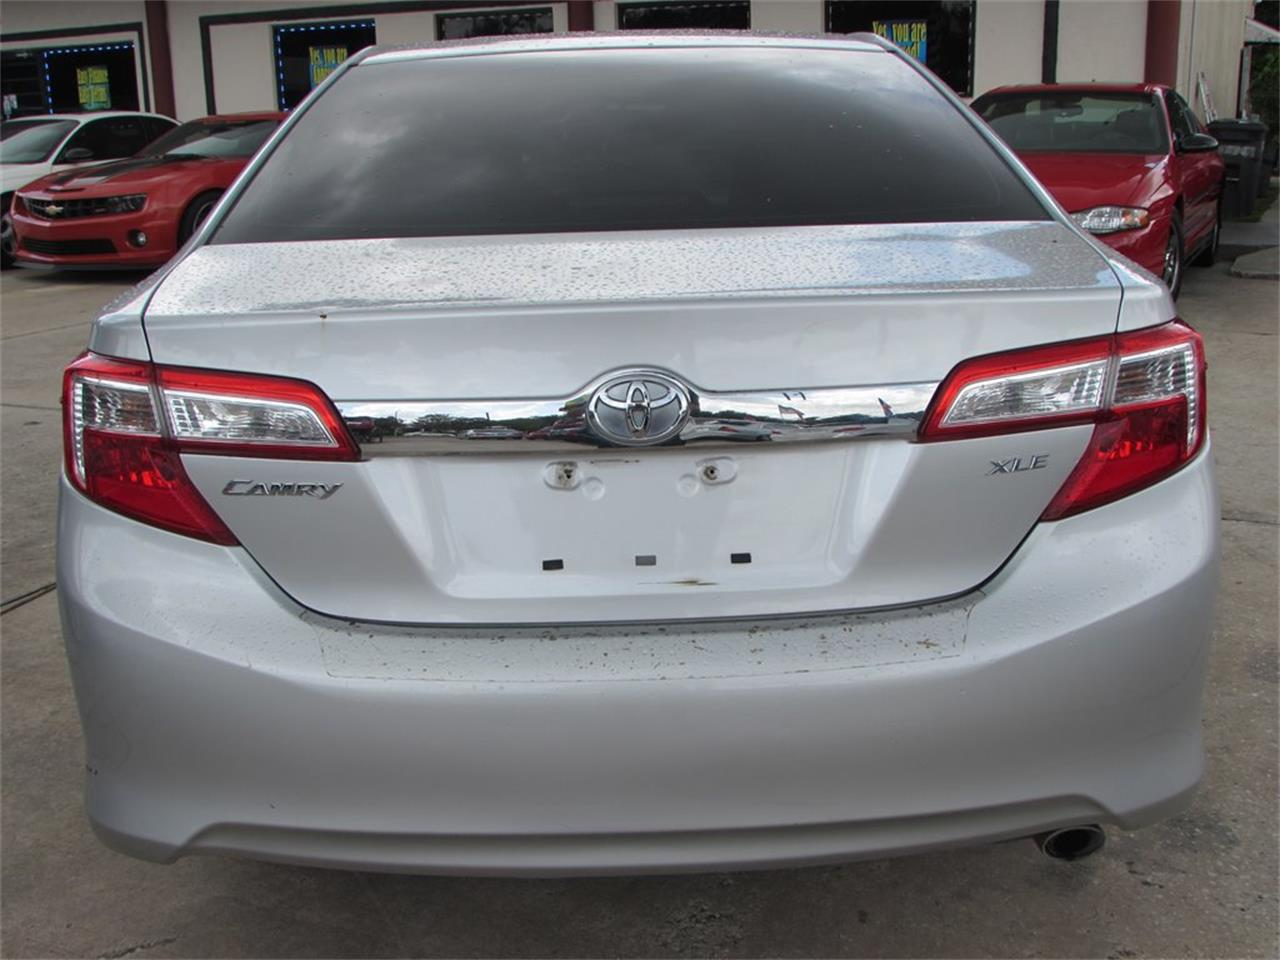 Large Picture of '12 Camry located in Florida - $9,500.00 - QBF0